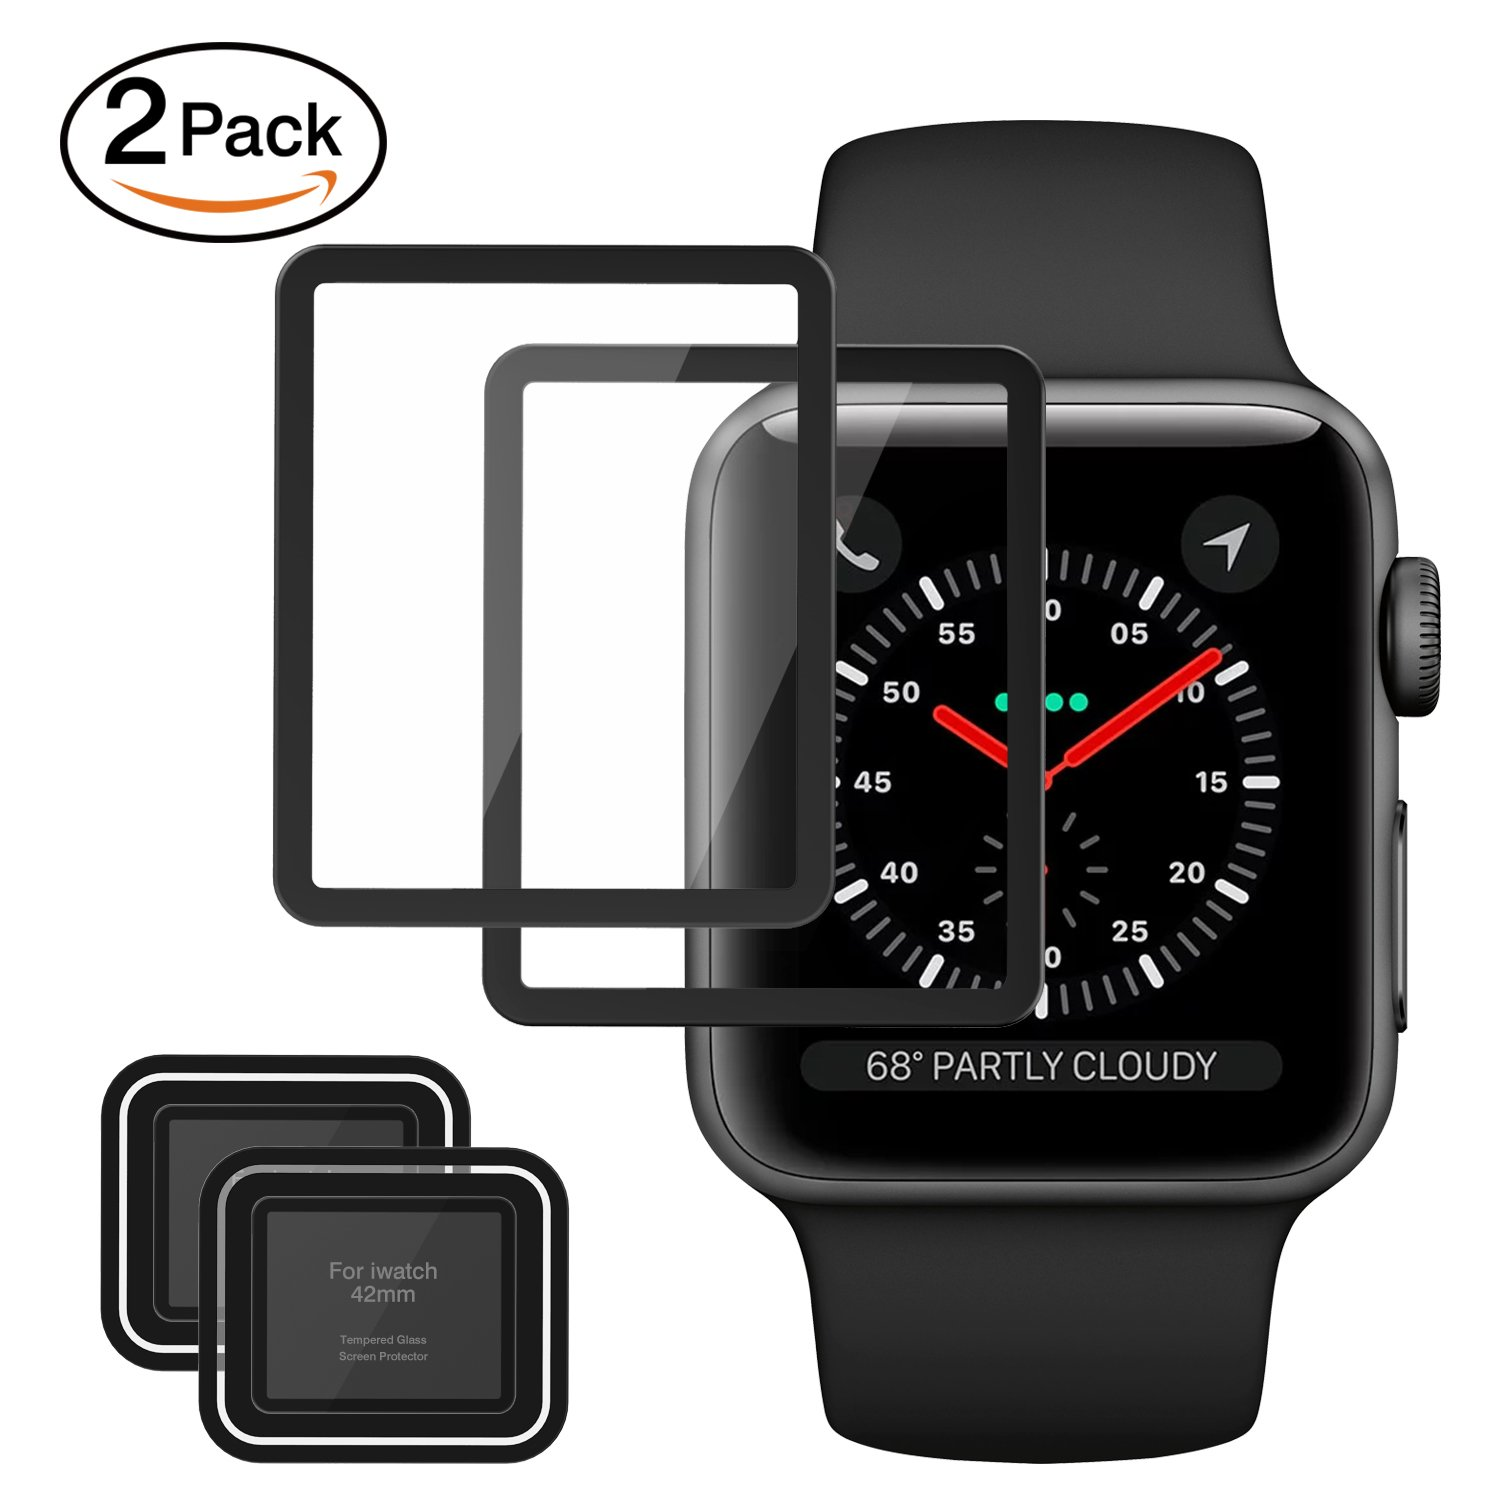 MoKo Tempered Glass Screen Protector for Apple Watch 42mm, [2-PACK] Premium HD Clear Shield Cover Anti-Scratch Film for iWatch 42mm Series 1 / 2 / 3 2017, Black (Not Fit Apple Watch 38mm)